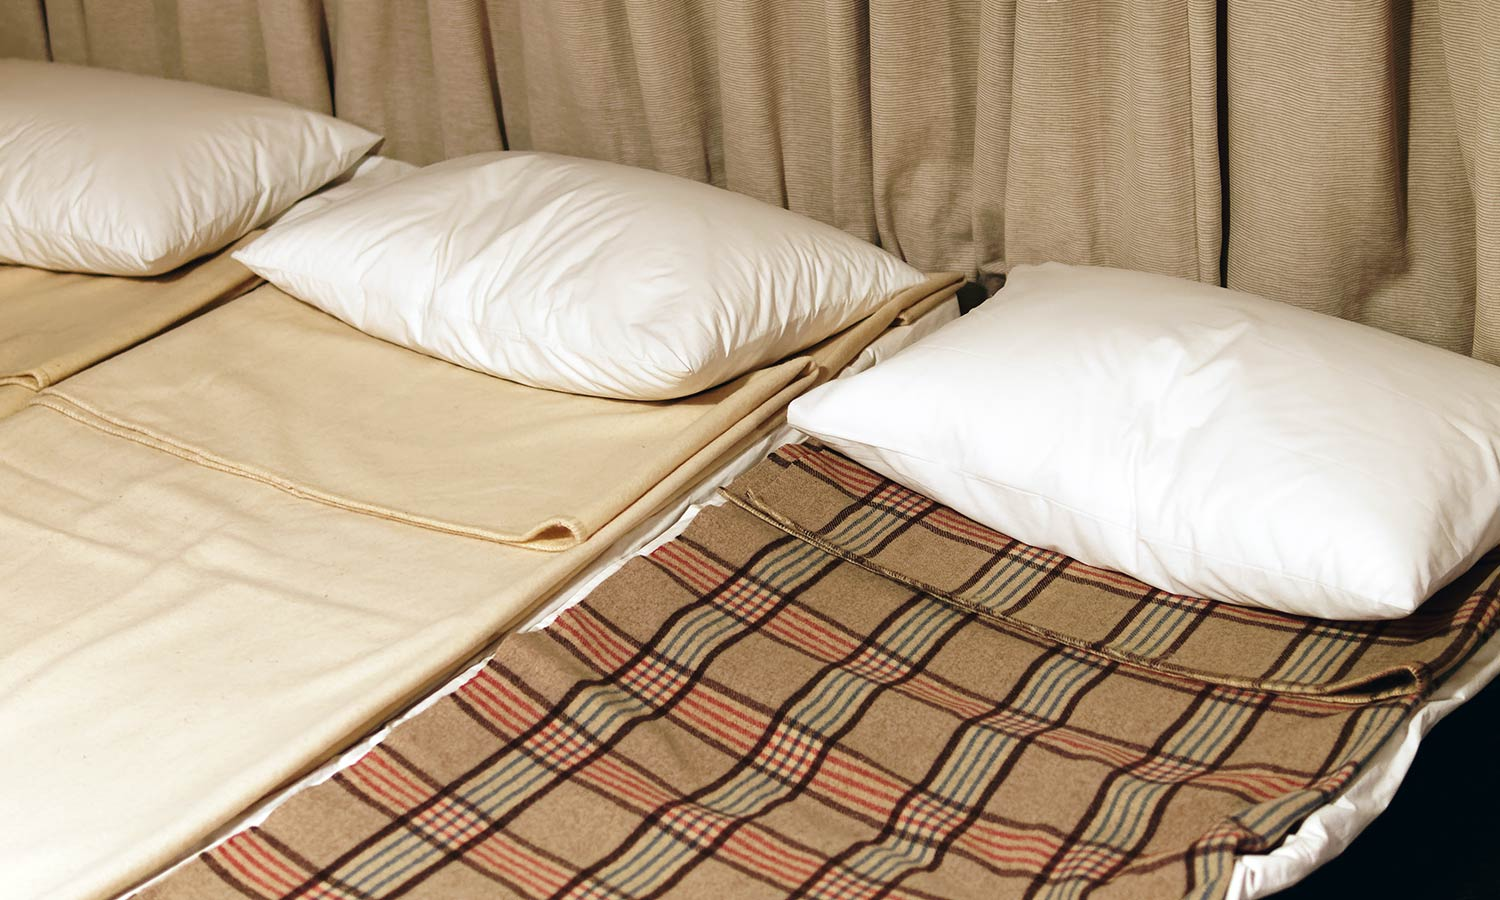 Three small cots next to each other with pillows and thin blankets.